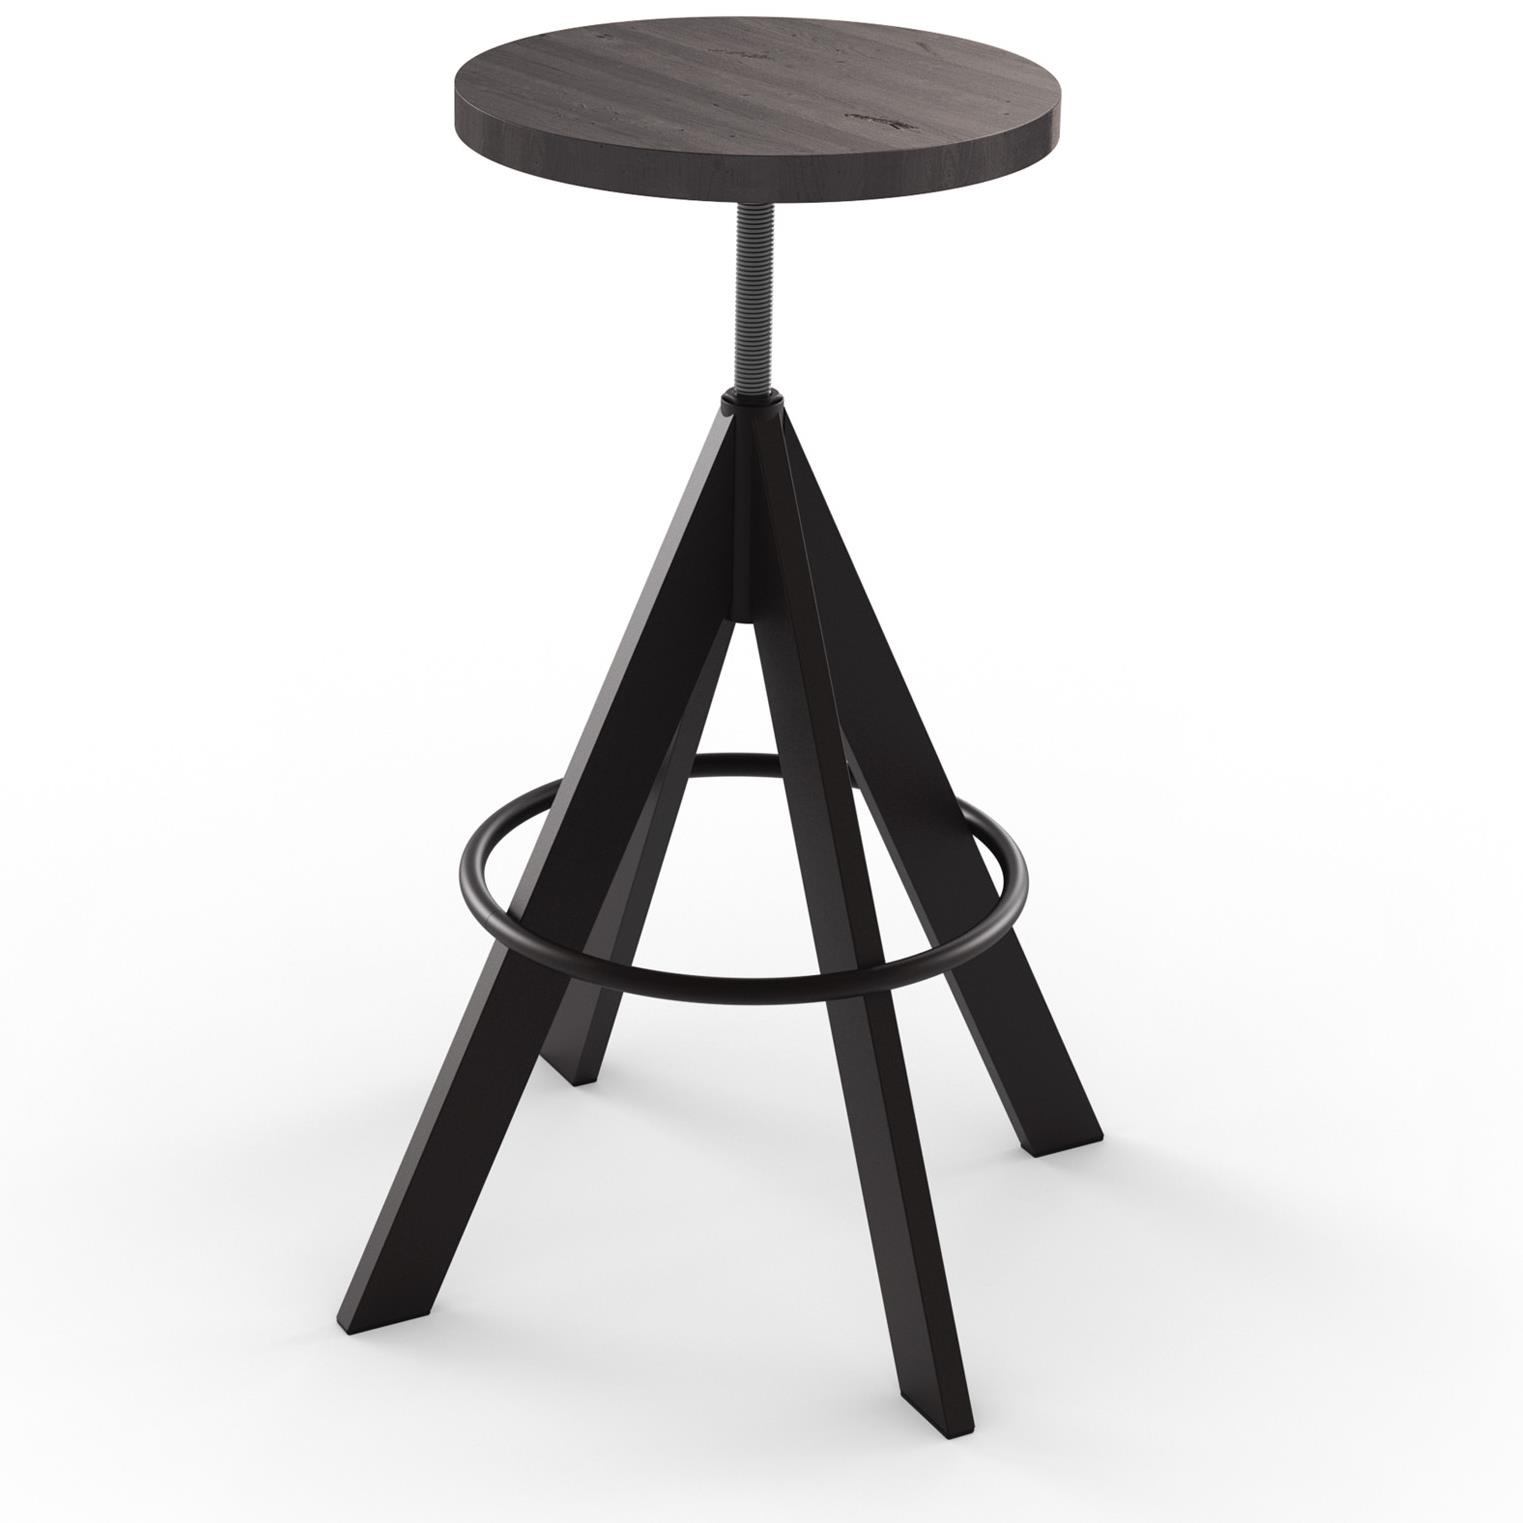 2257 Industrial 42614 Uplift Adjustable Height Stool With